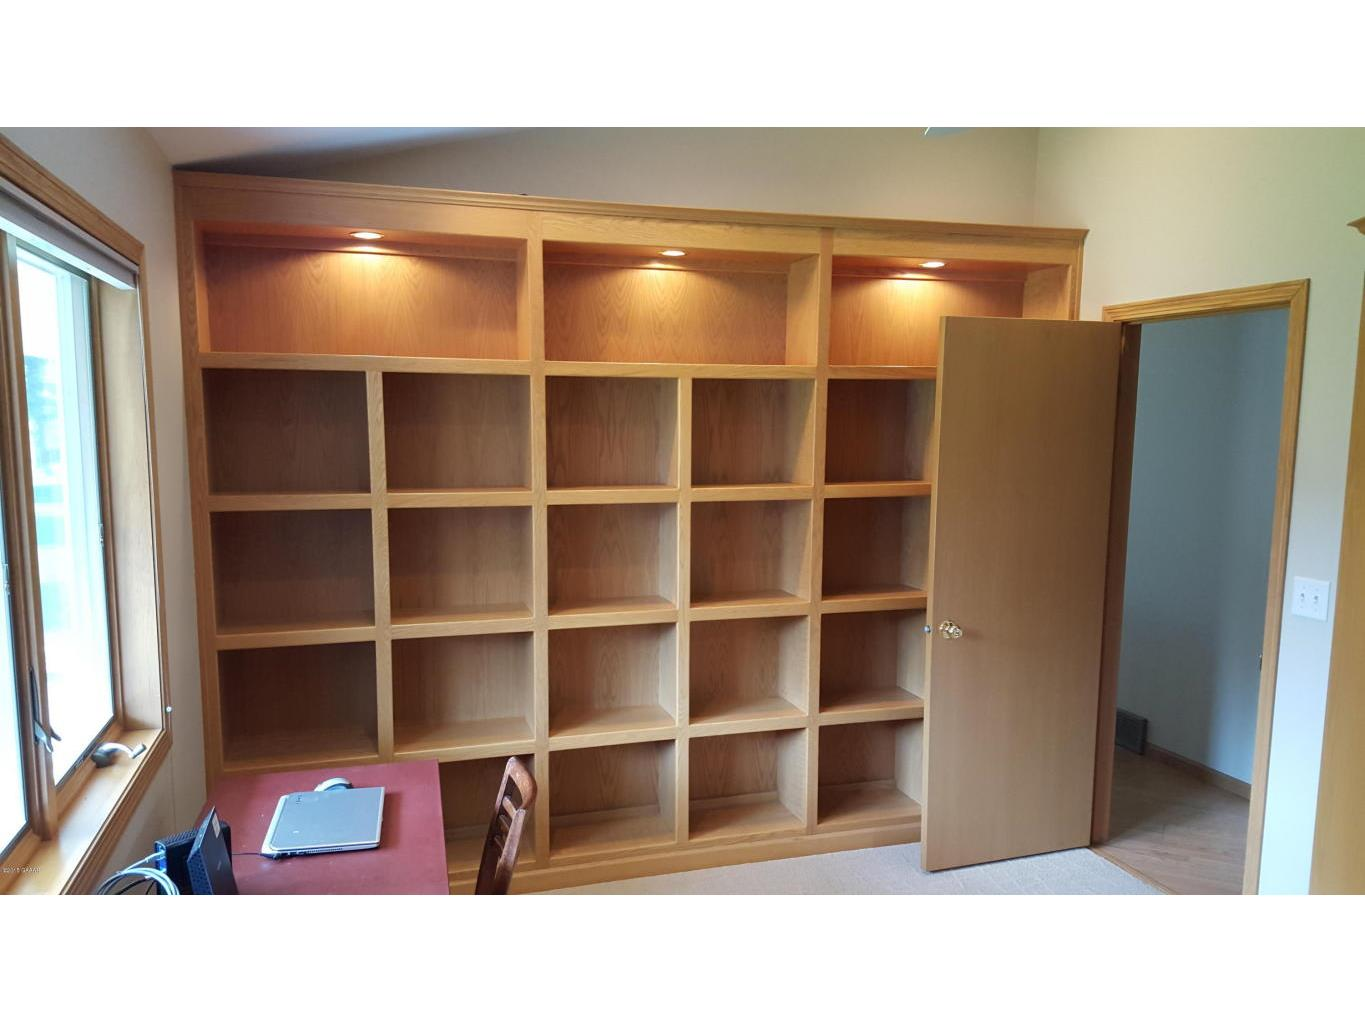 furey office bedroom with shelving and M